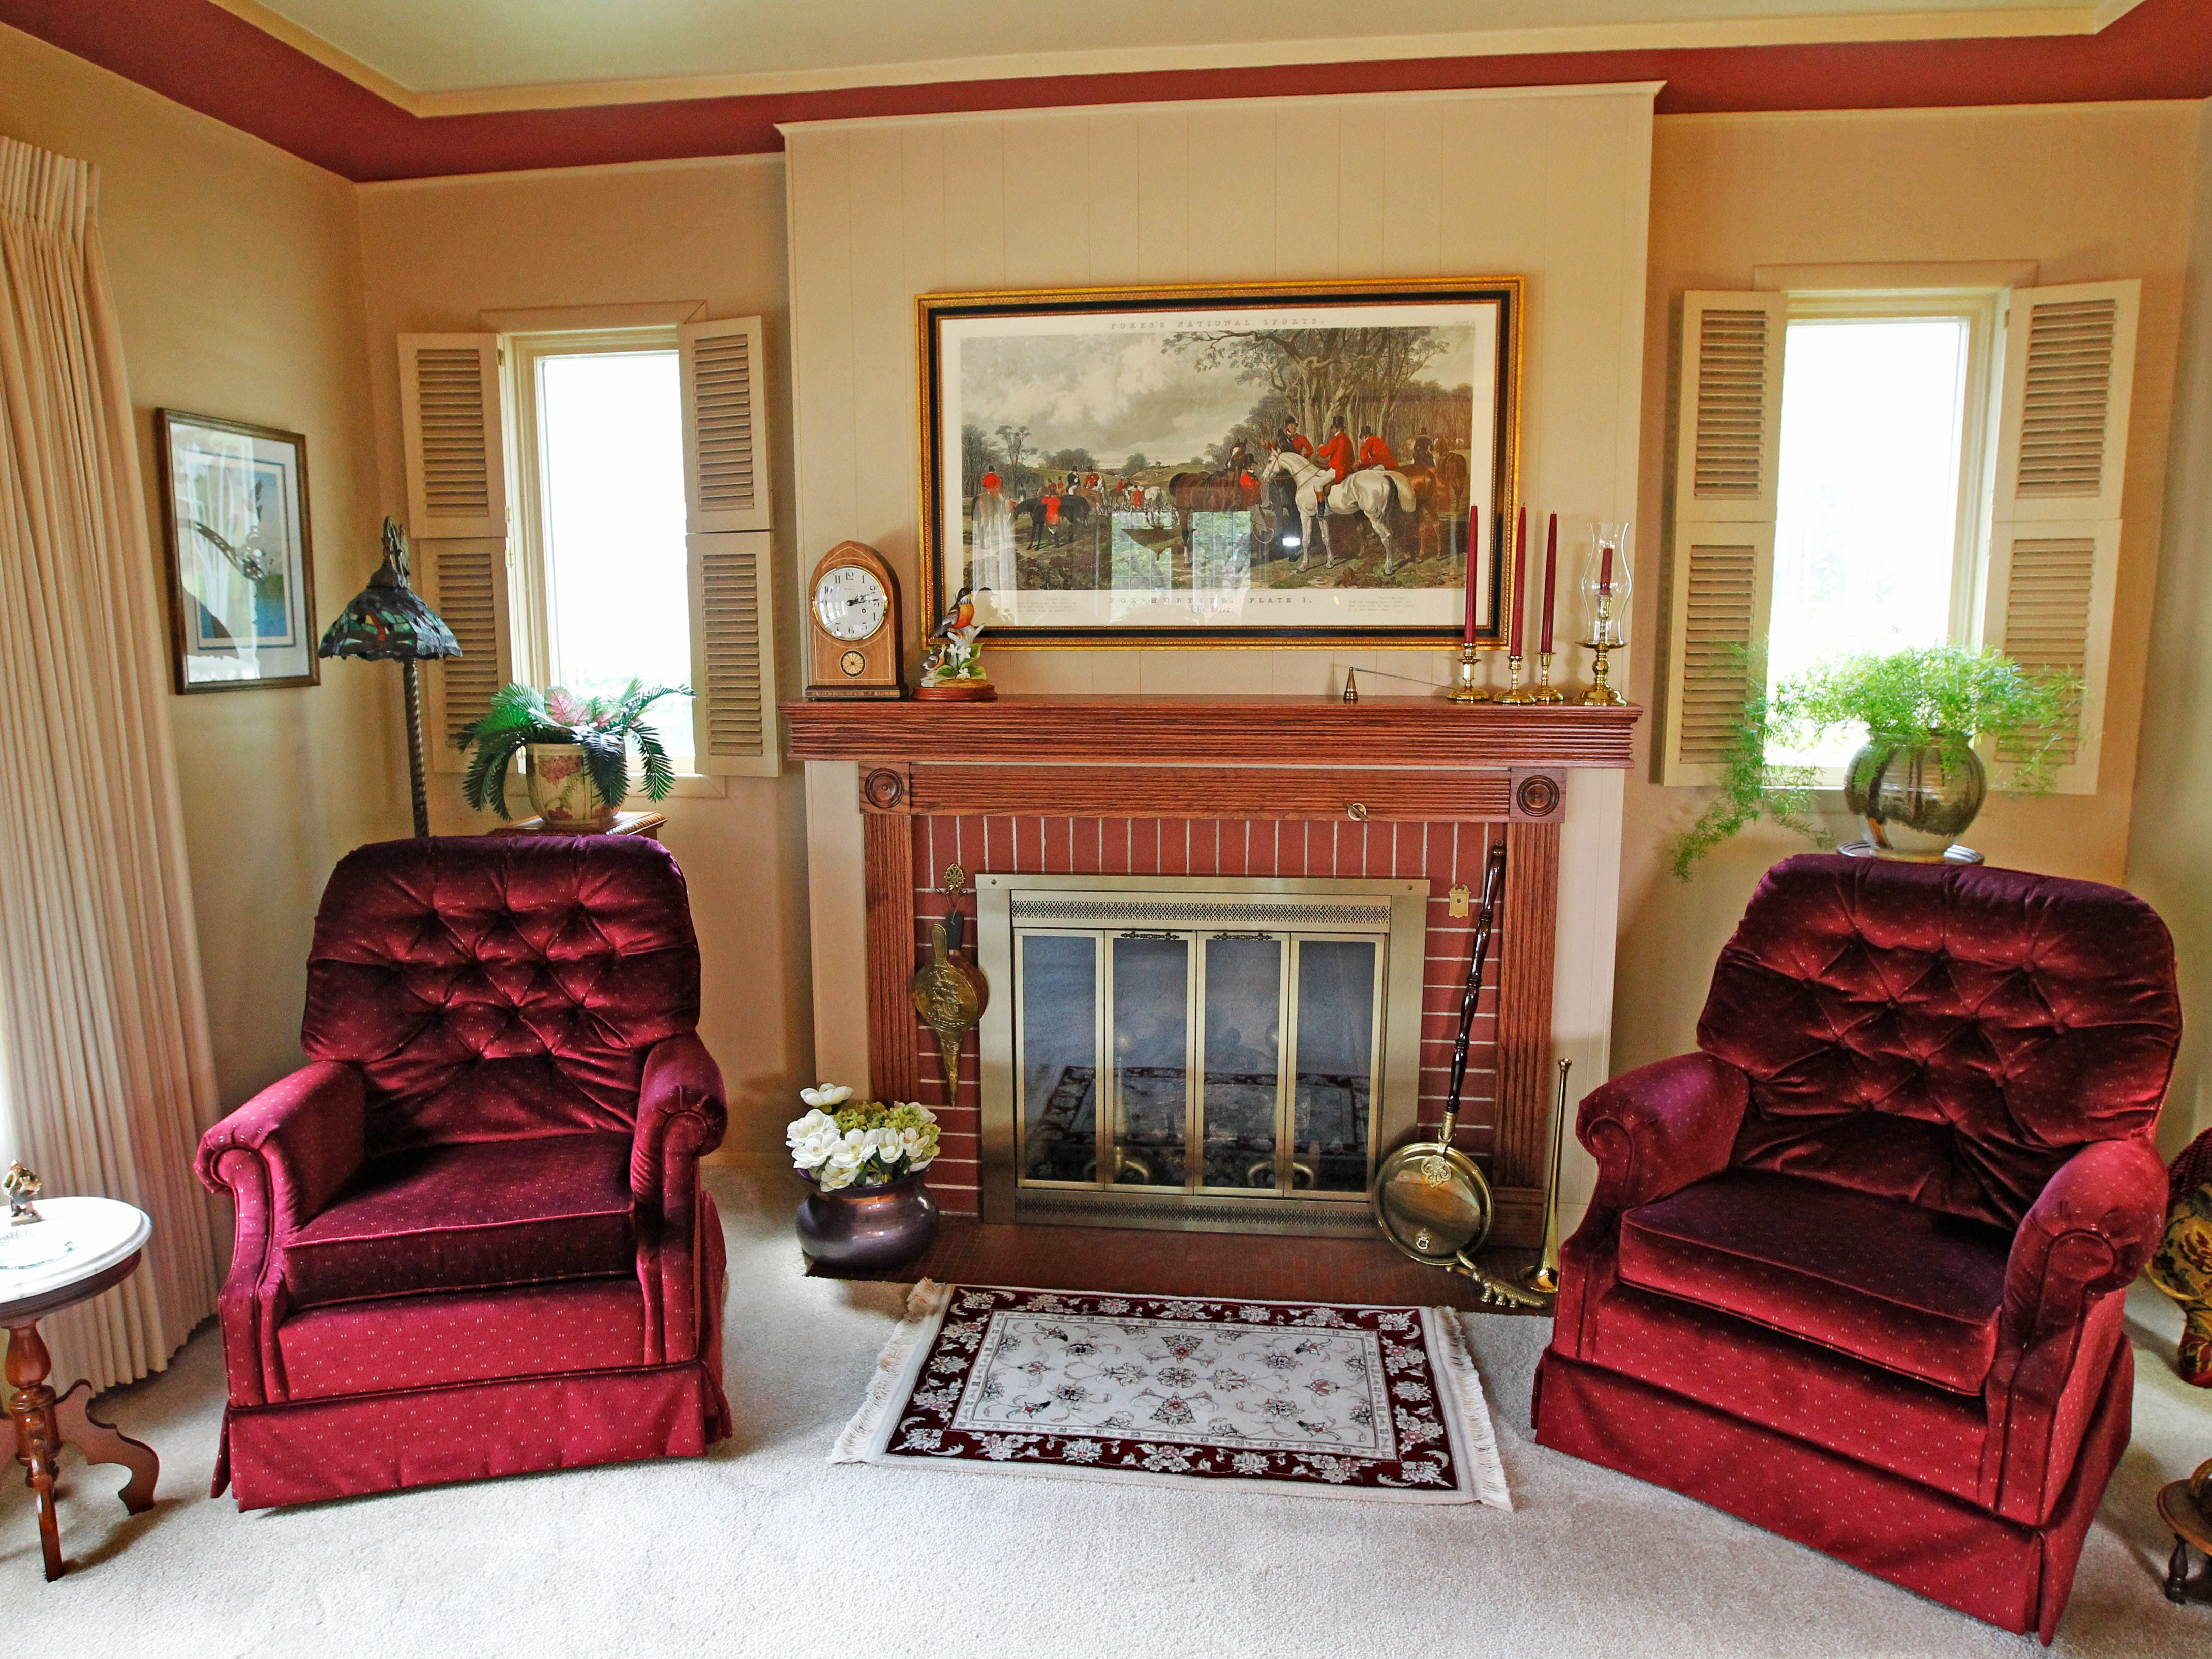 These two chairs provide a cozy spot next to the fireplace in the living room.